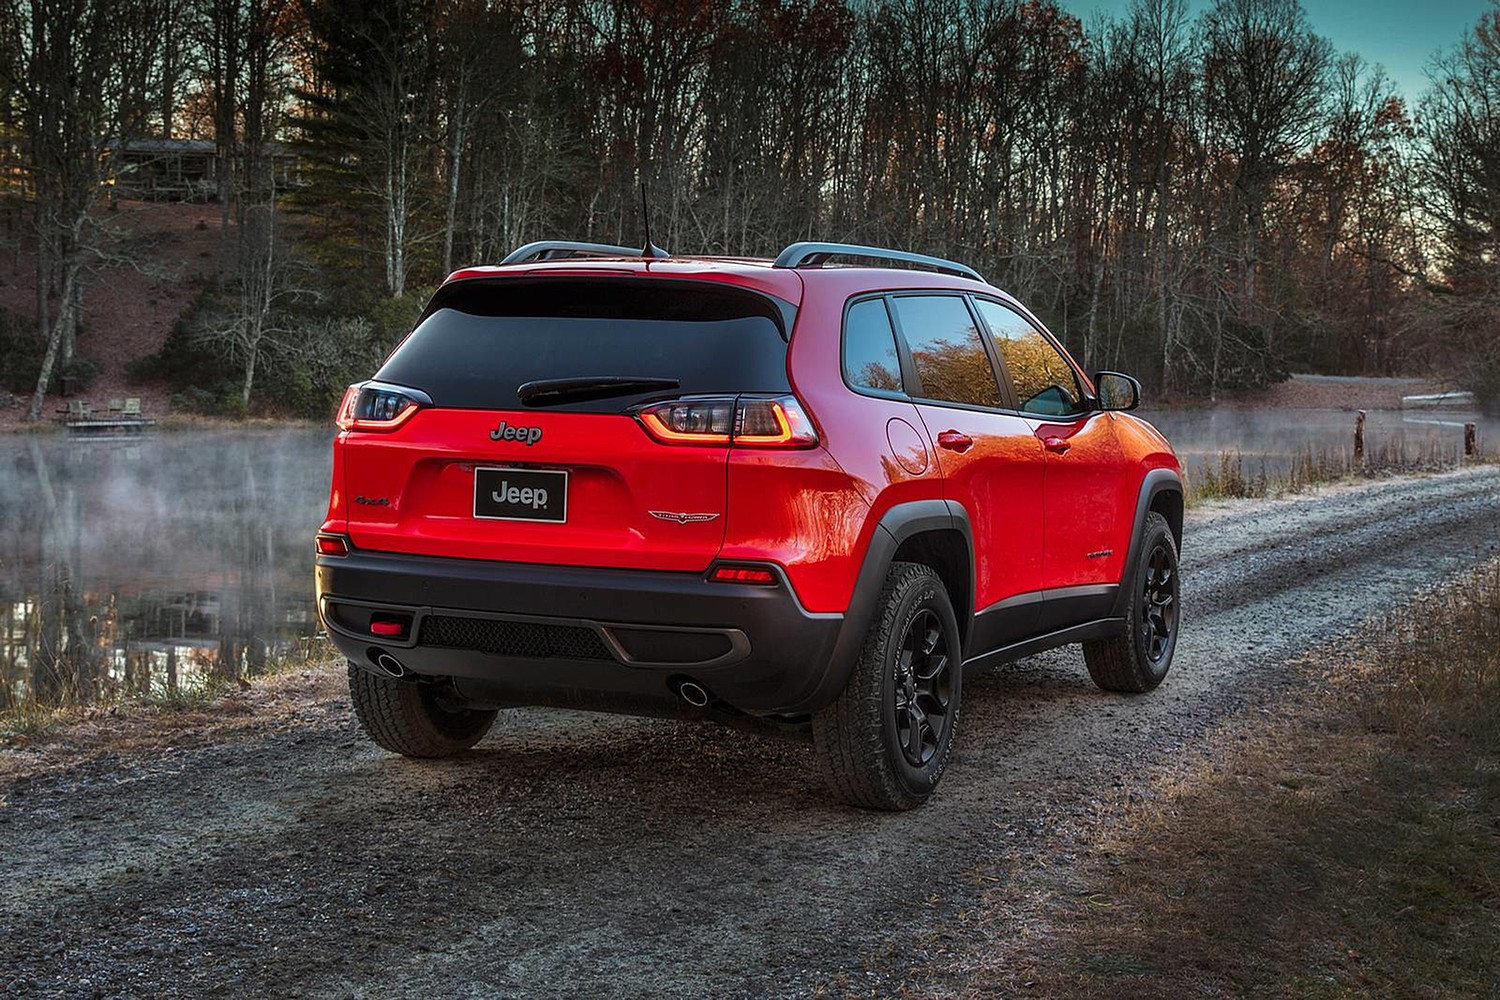 2019 Jeep Cherokee Trailhawk 4dr SUV Exterior. Options Shown.